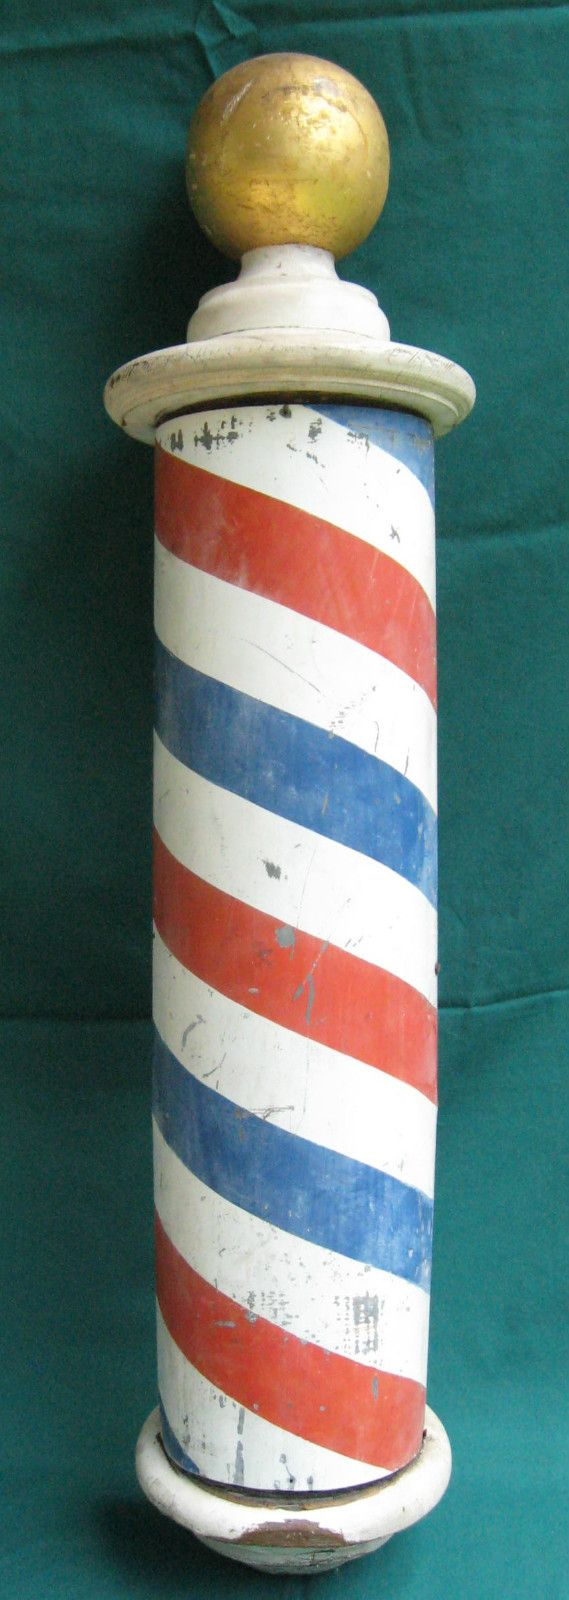 Barber shop pole distressed wall decal vintage style wall decor ebay - Vintage Barber Pole Decorative Advertising Sign Ebay We Get Haircuts At Our July 4th